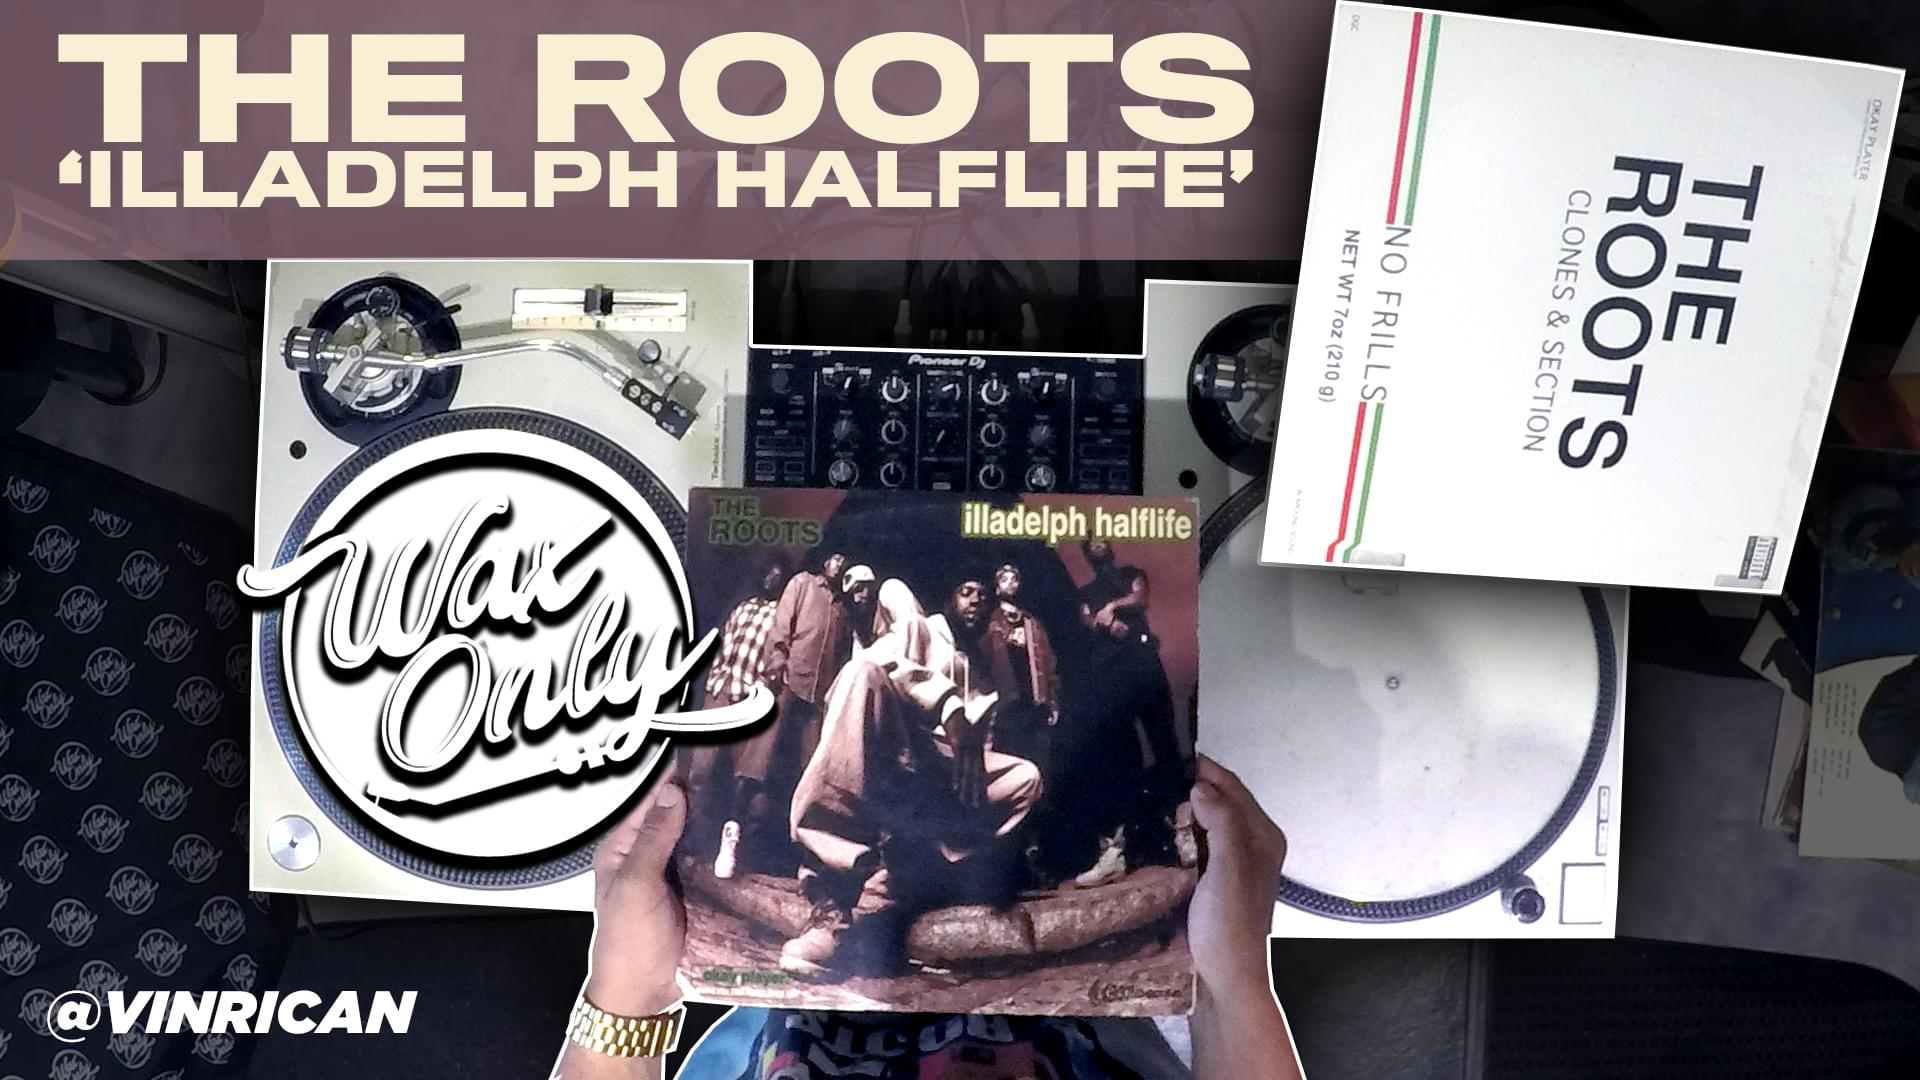 #WAXONLY: Vin Rican Showcases Samples Used On The Roots' Third Studio Album 'ILLADELPH Halflife'